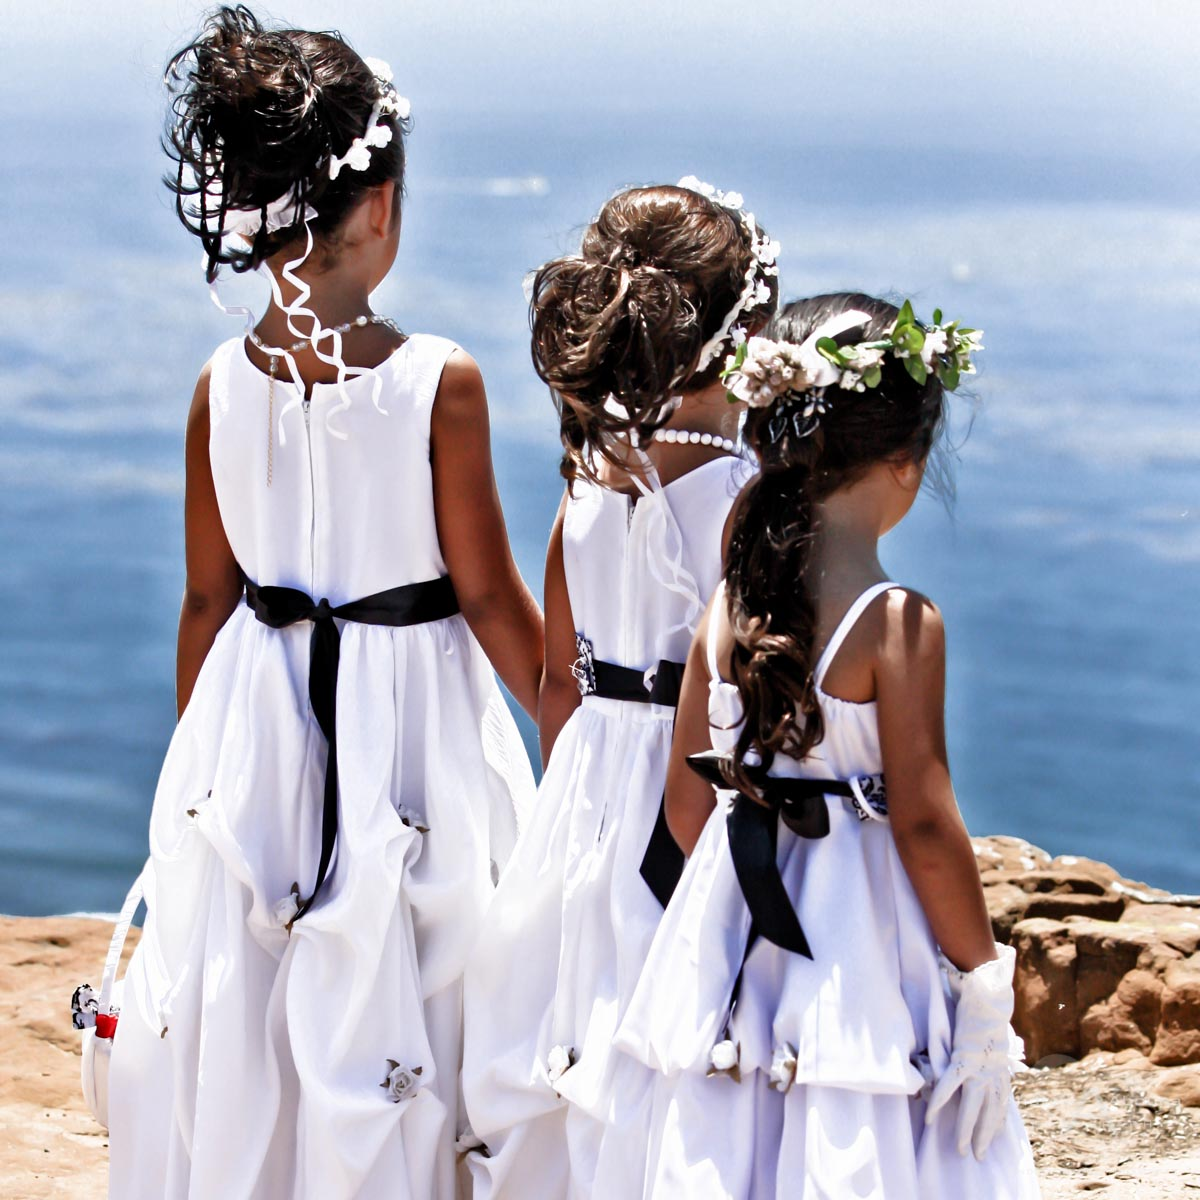 Three Flower Girls Each In A White Dress With Black Sash Looking